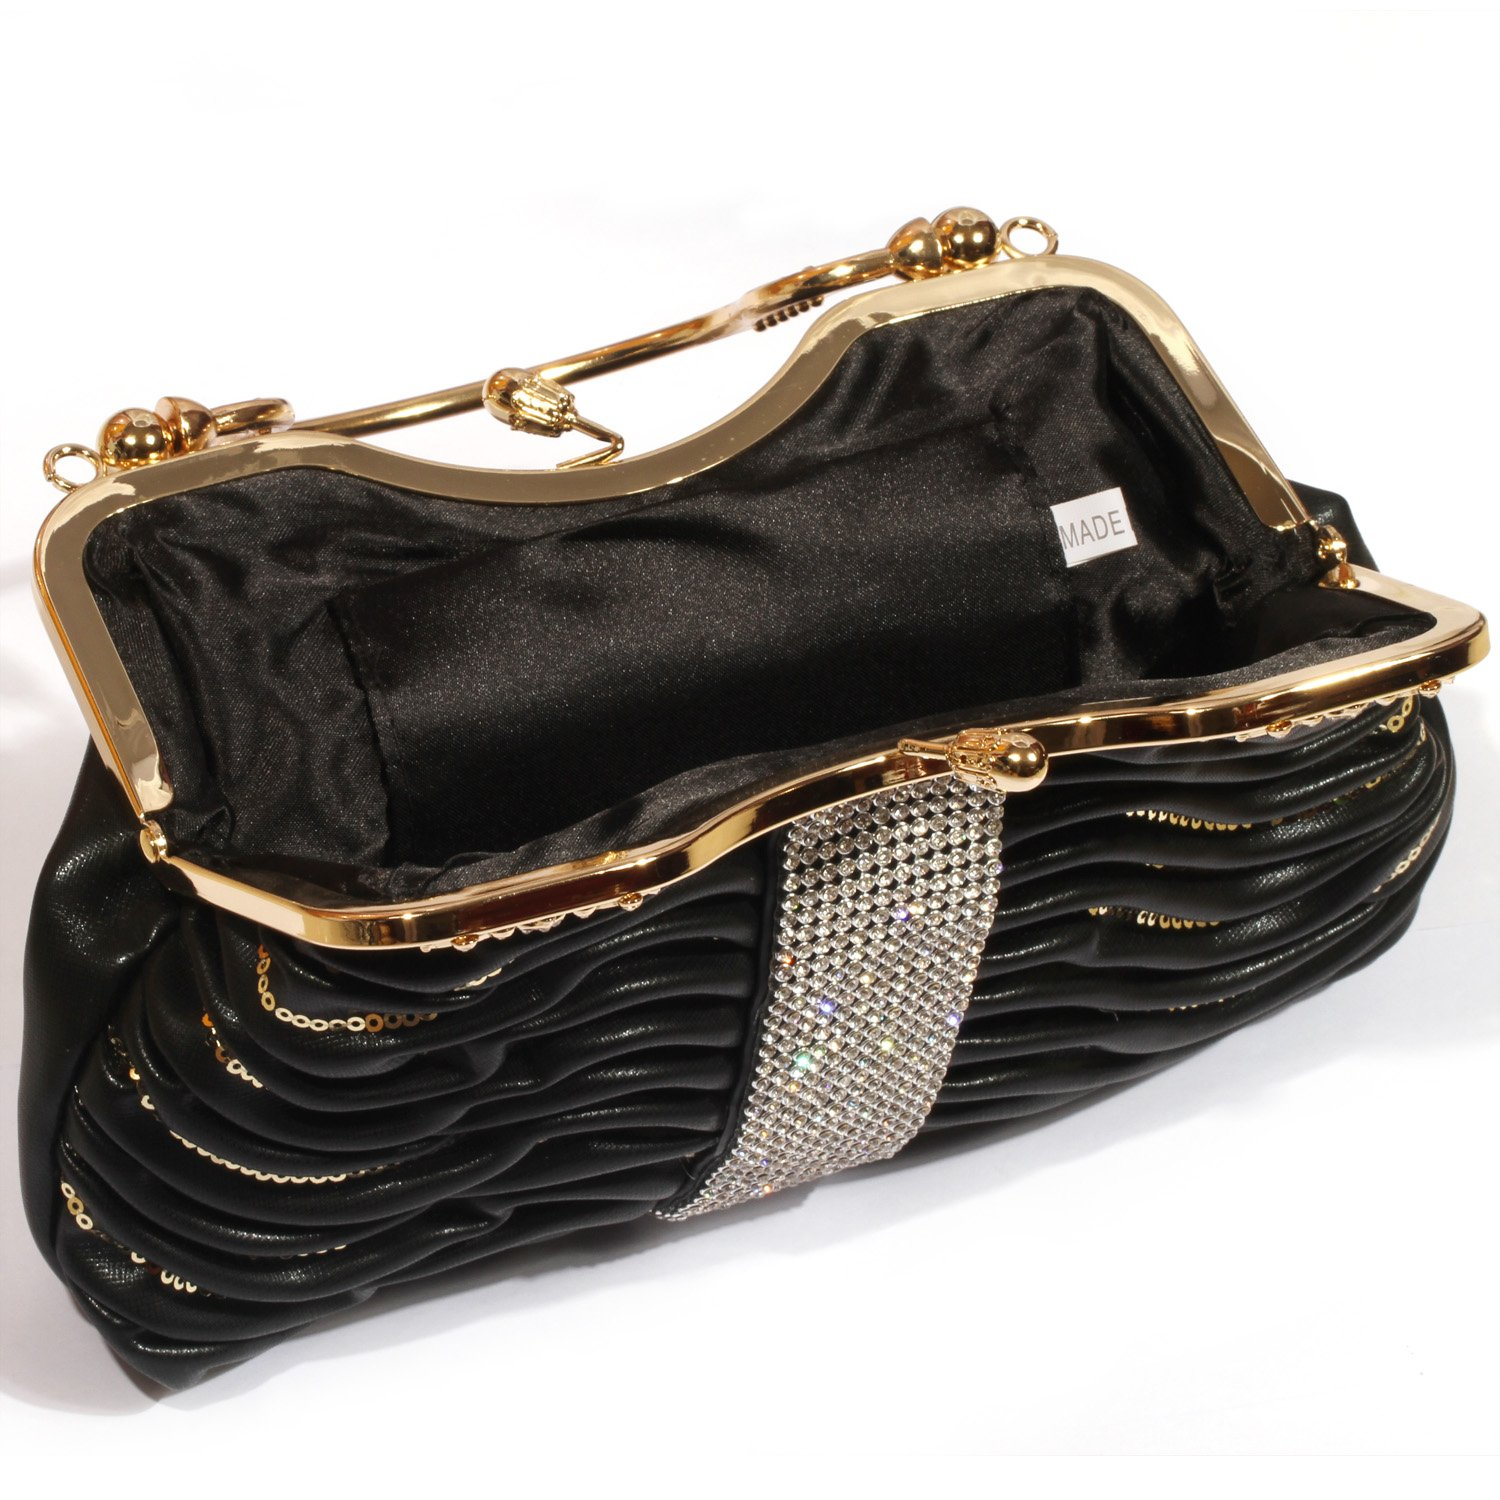 3a84b7f59d Digabi Sequins Overlay c Evening Handbags women Crystal Evening Clutch Bags  (One Size   10.5x9x2 IN  Amazon.in  Shoes   Handbags